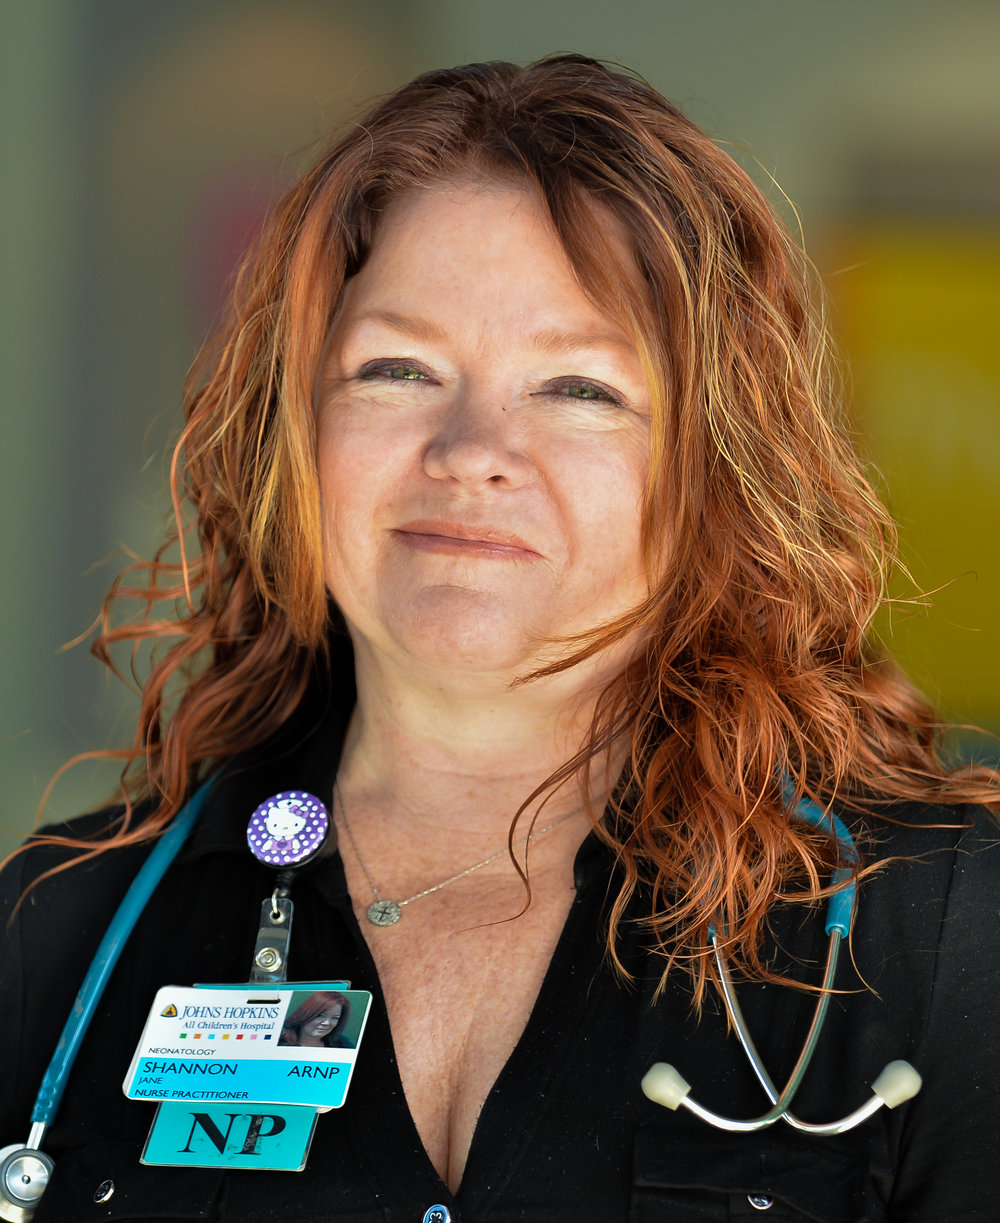 Jane Shannon is a nurse practitioner at the NAS follow-up clinic in Sarasota. [Herald-Tribune staff photo / Dan Wagner]